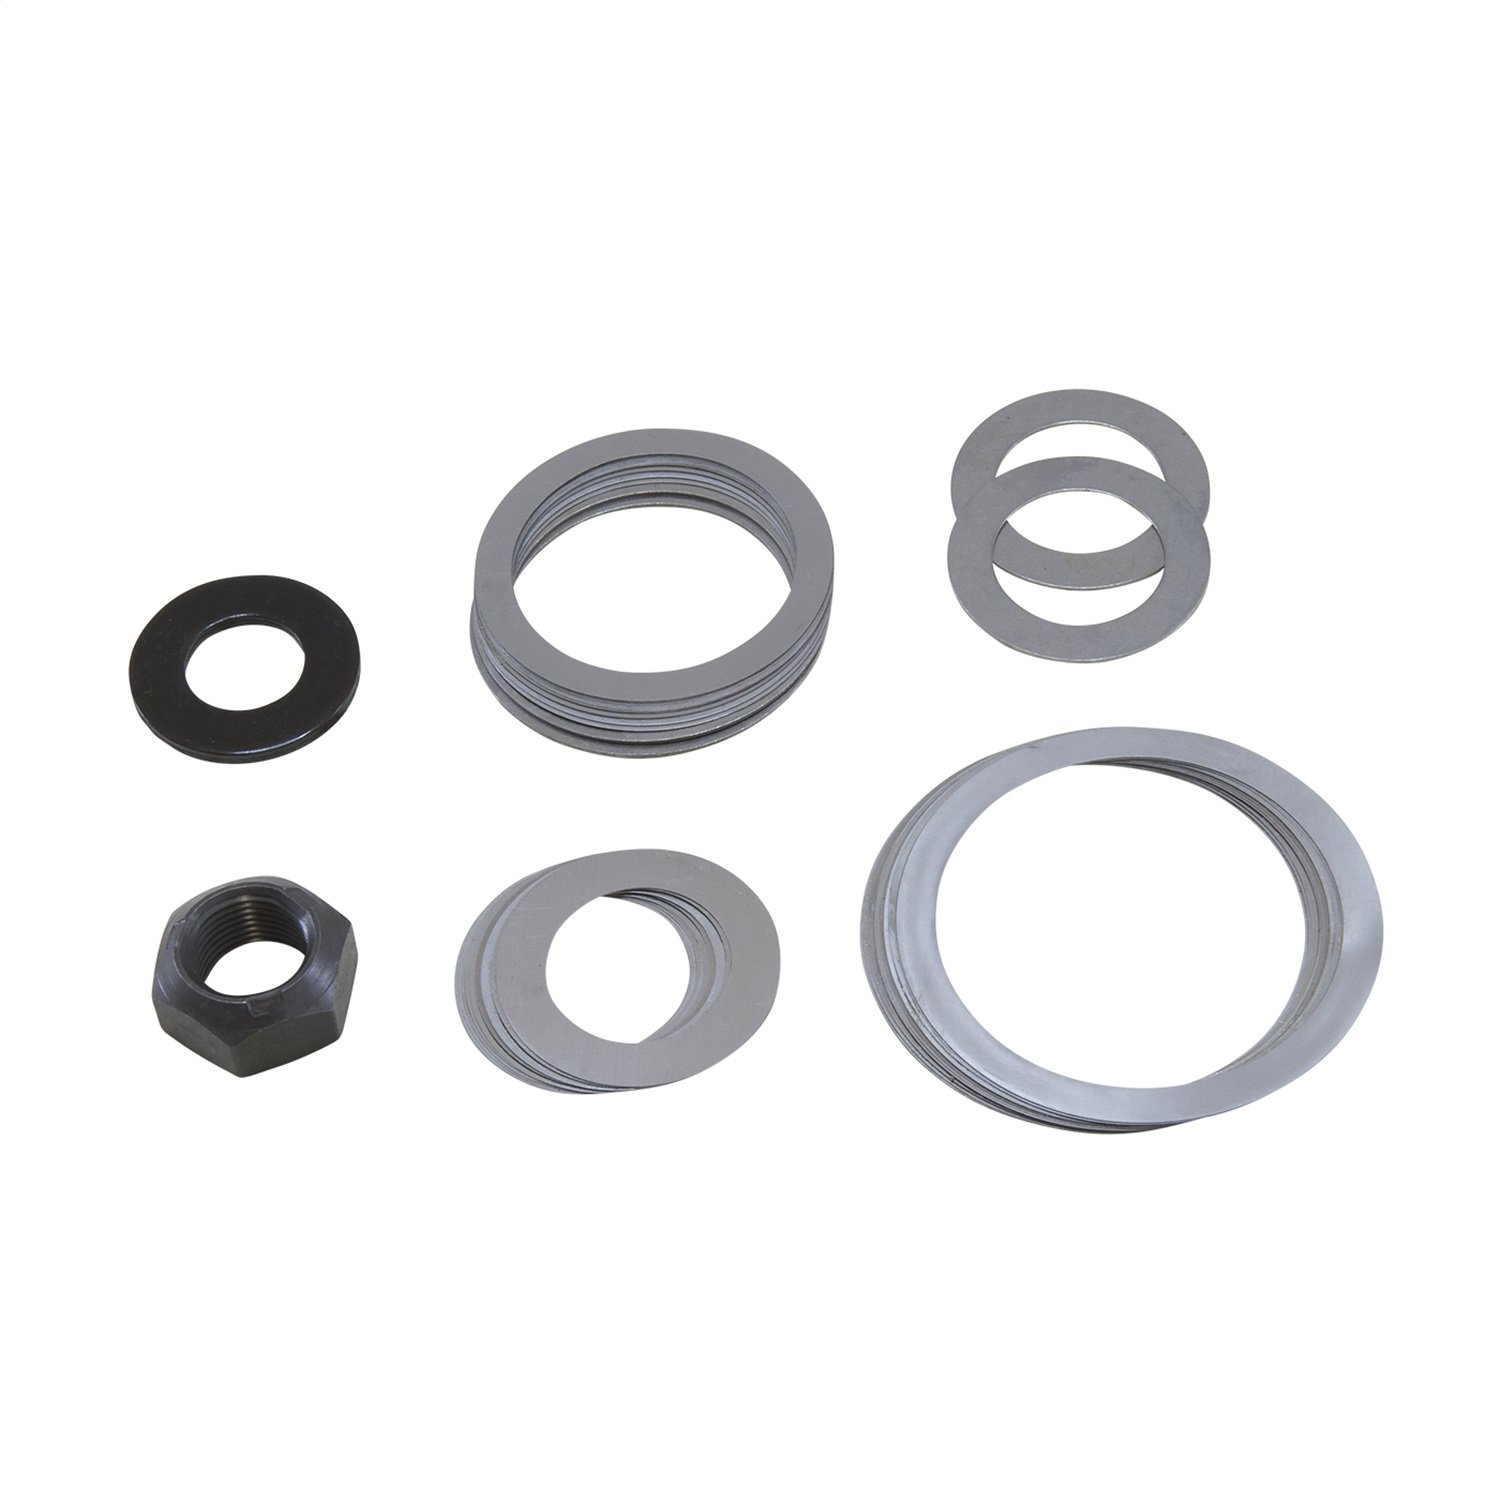 Yukon (SK 706376) Replacement Complete Shim Kit for Dana 44 Differential Yukon Gear